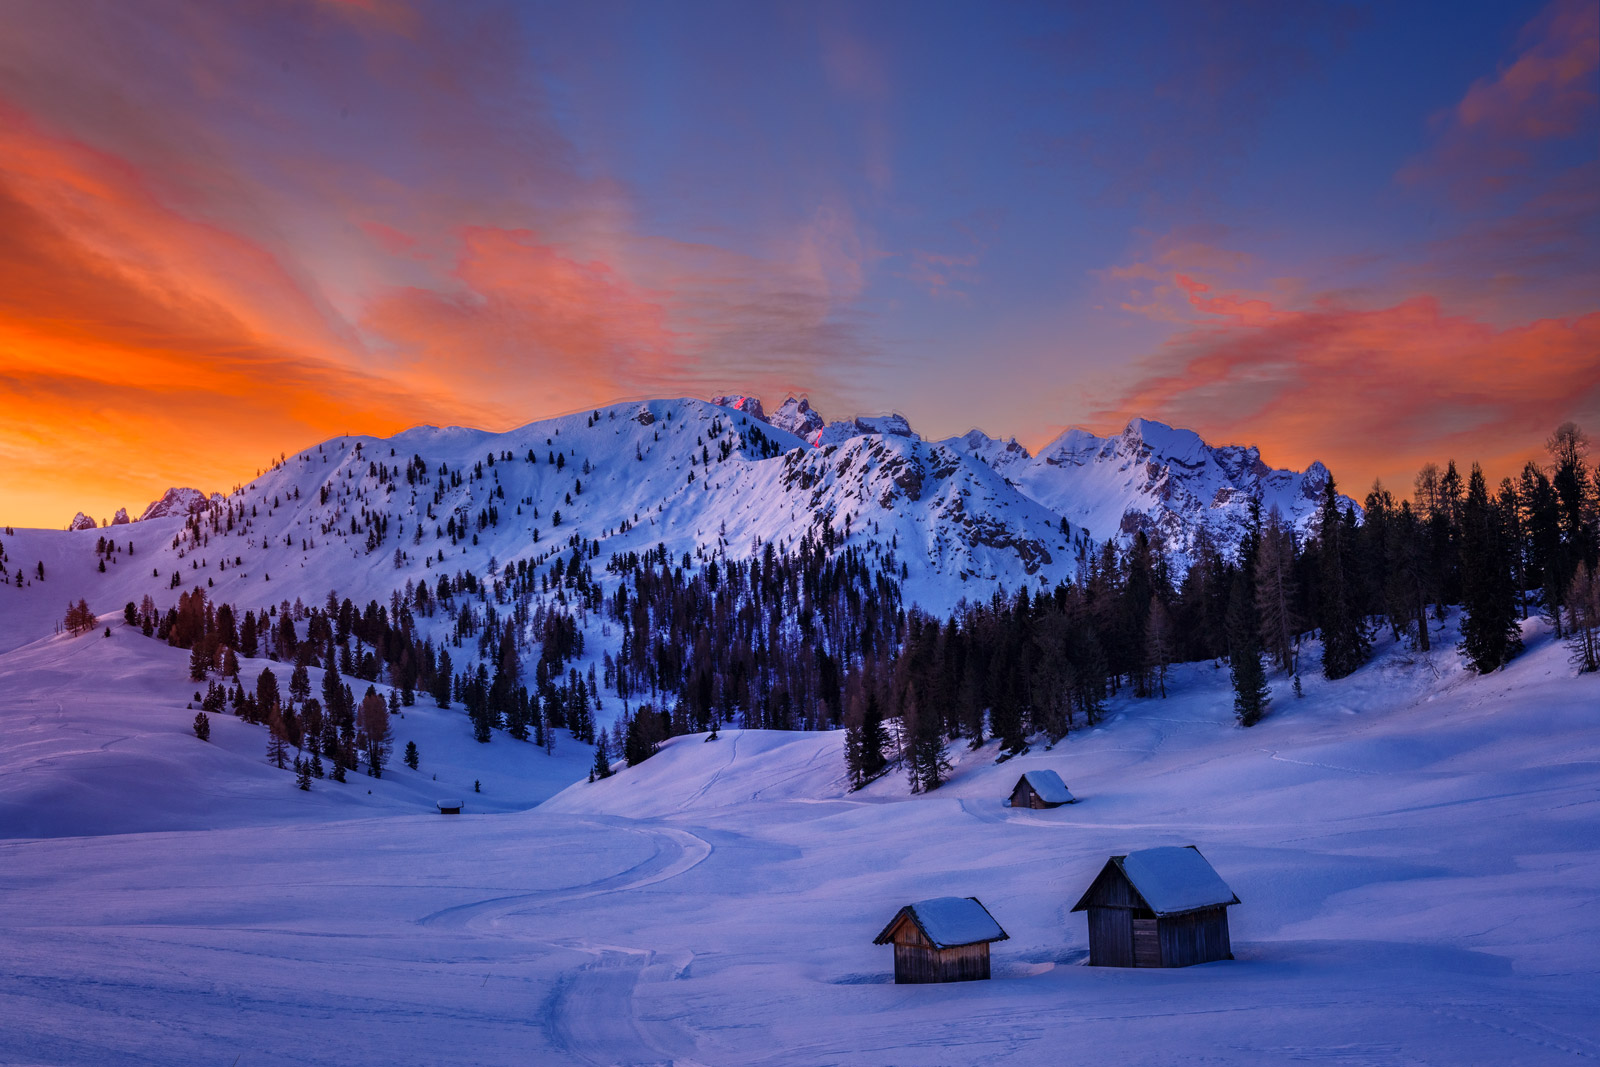 Italy, Dolomites, Mountains, Sunrise, Sheppard, Huts, limited edition, photograph, photo